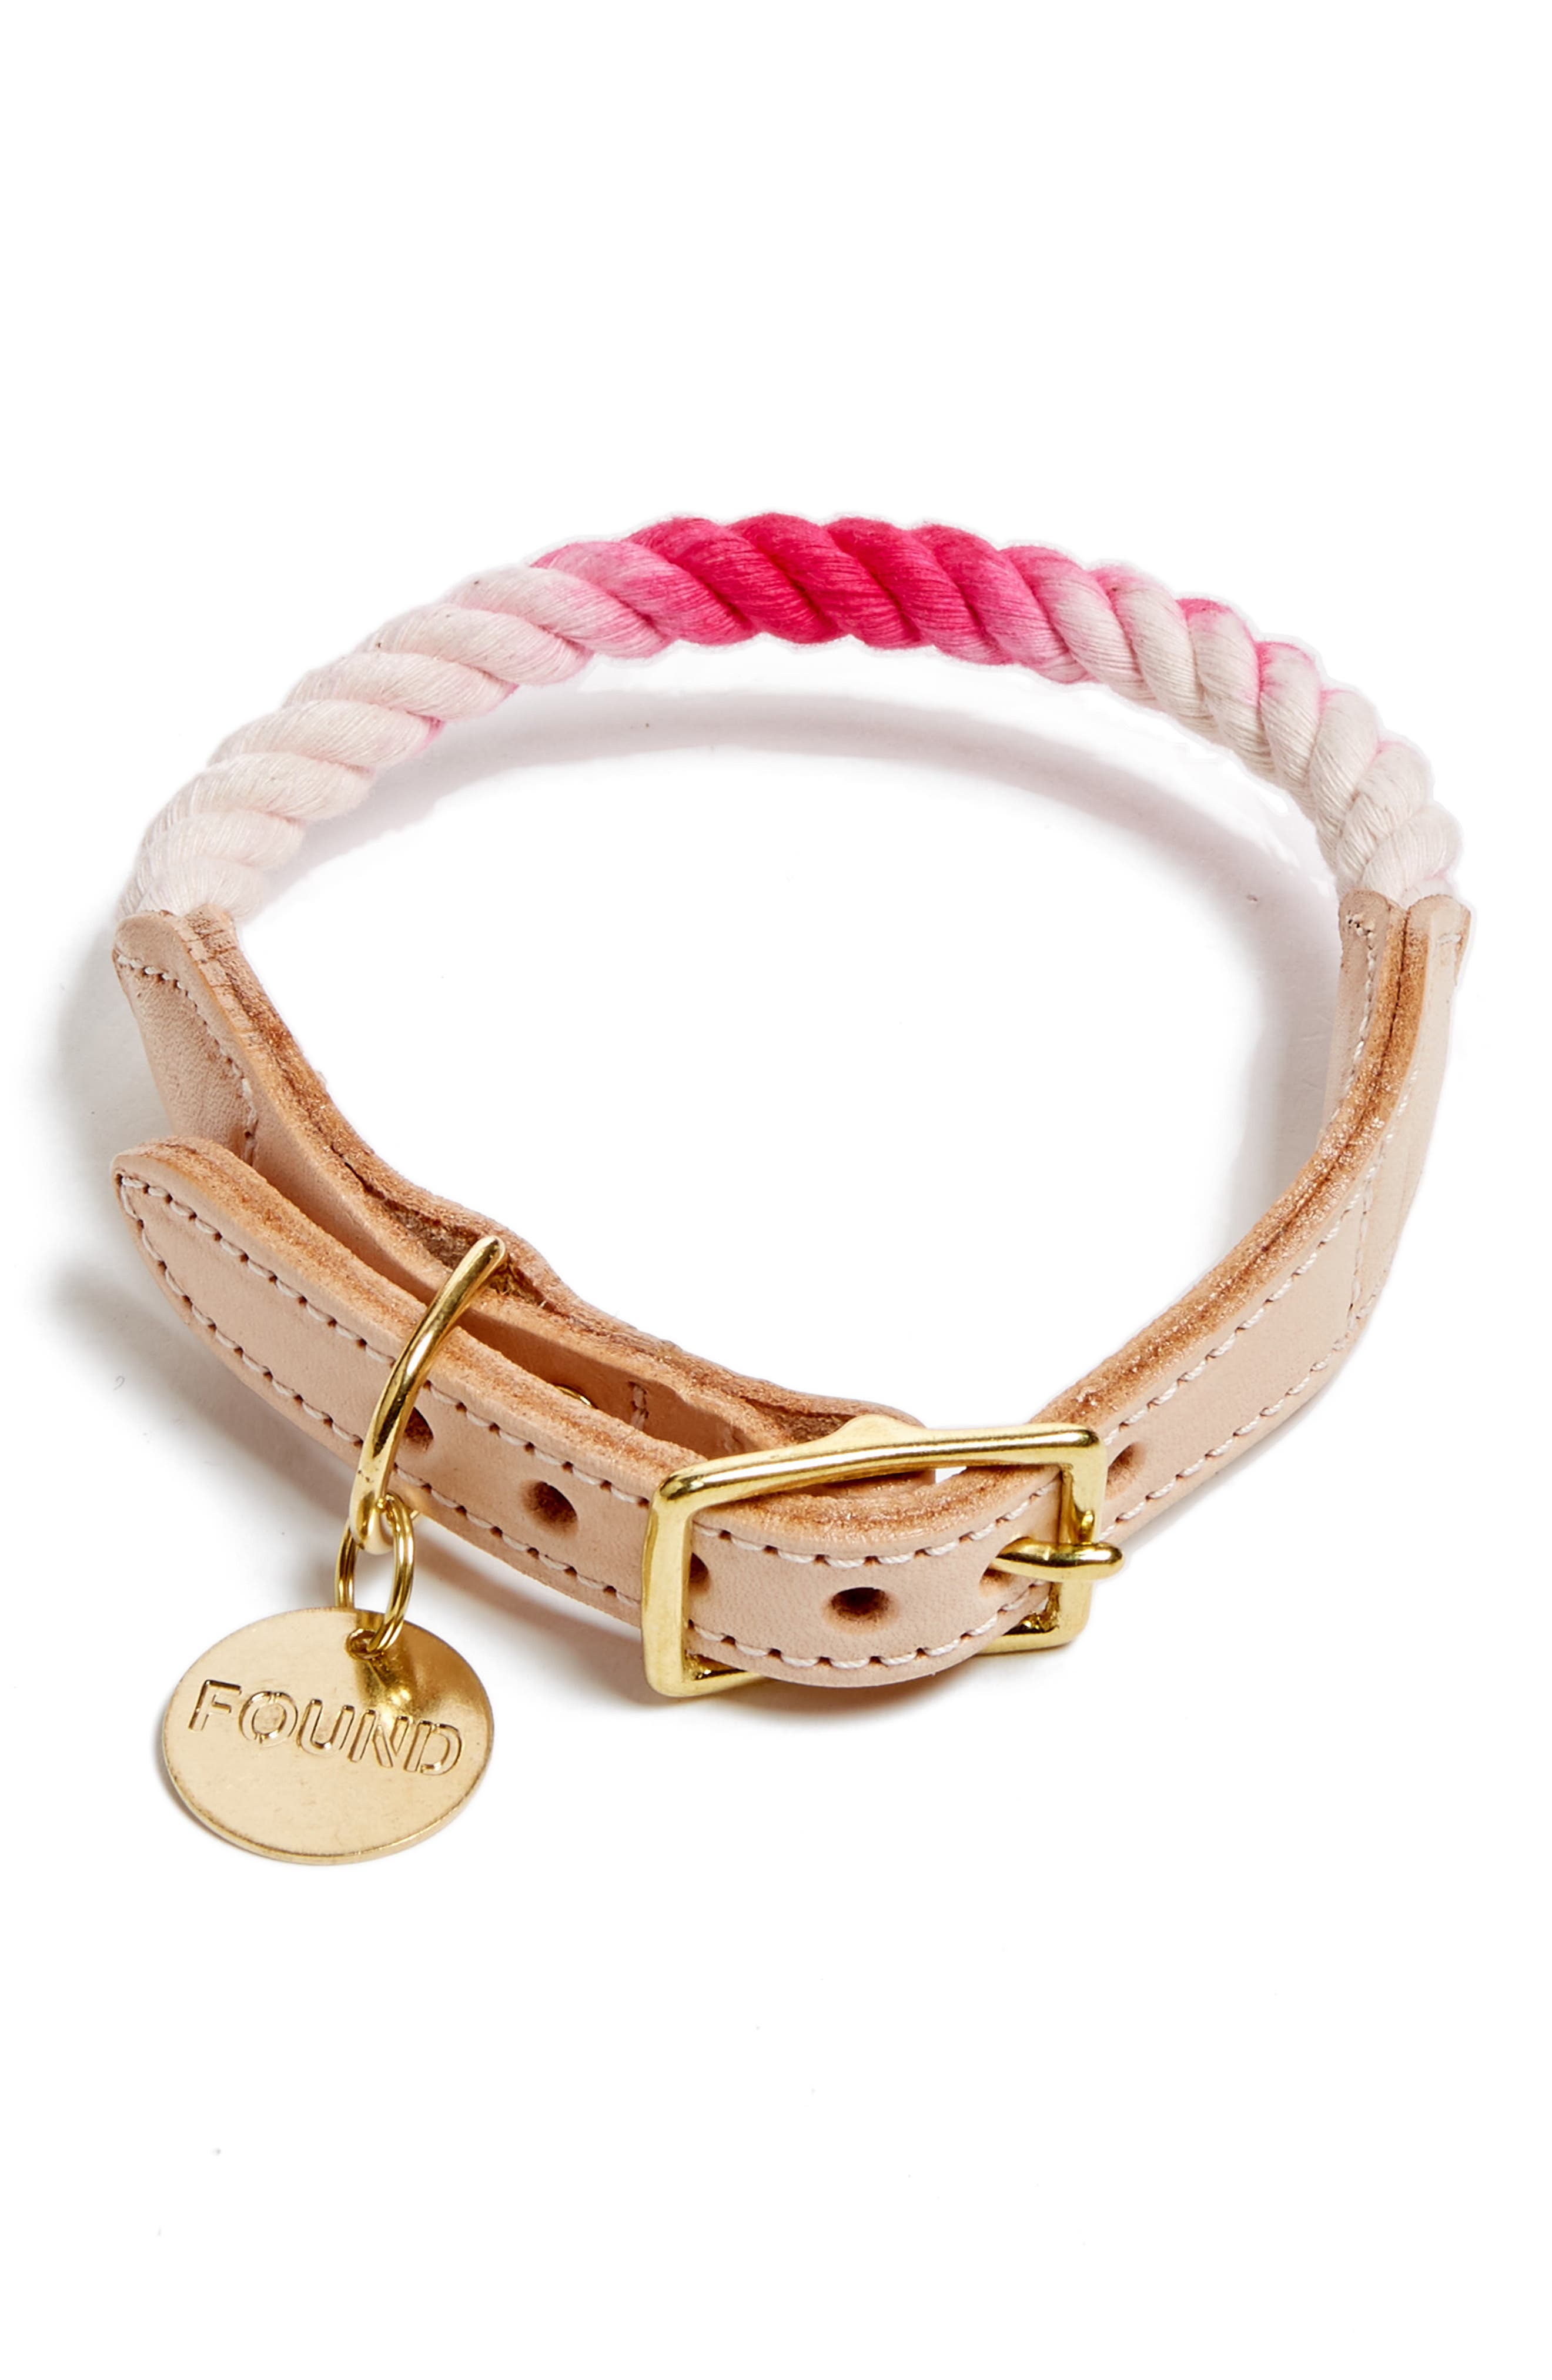 Rope & Leather Pet Collar,                         Main,                         color, Magenta Ombre